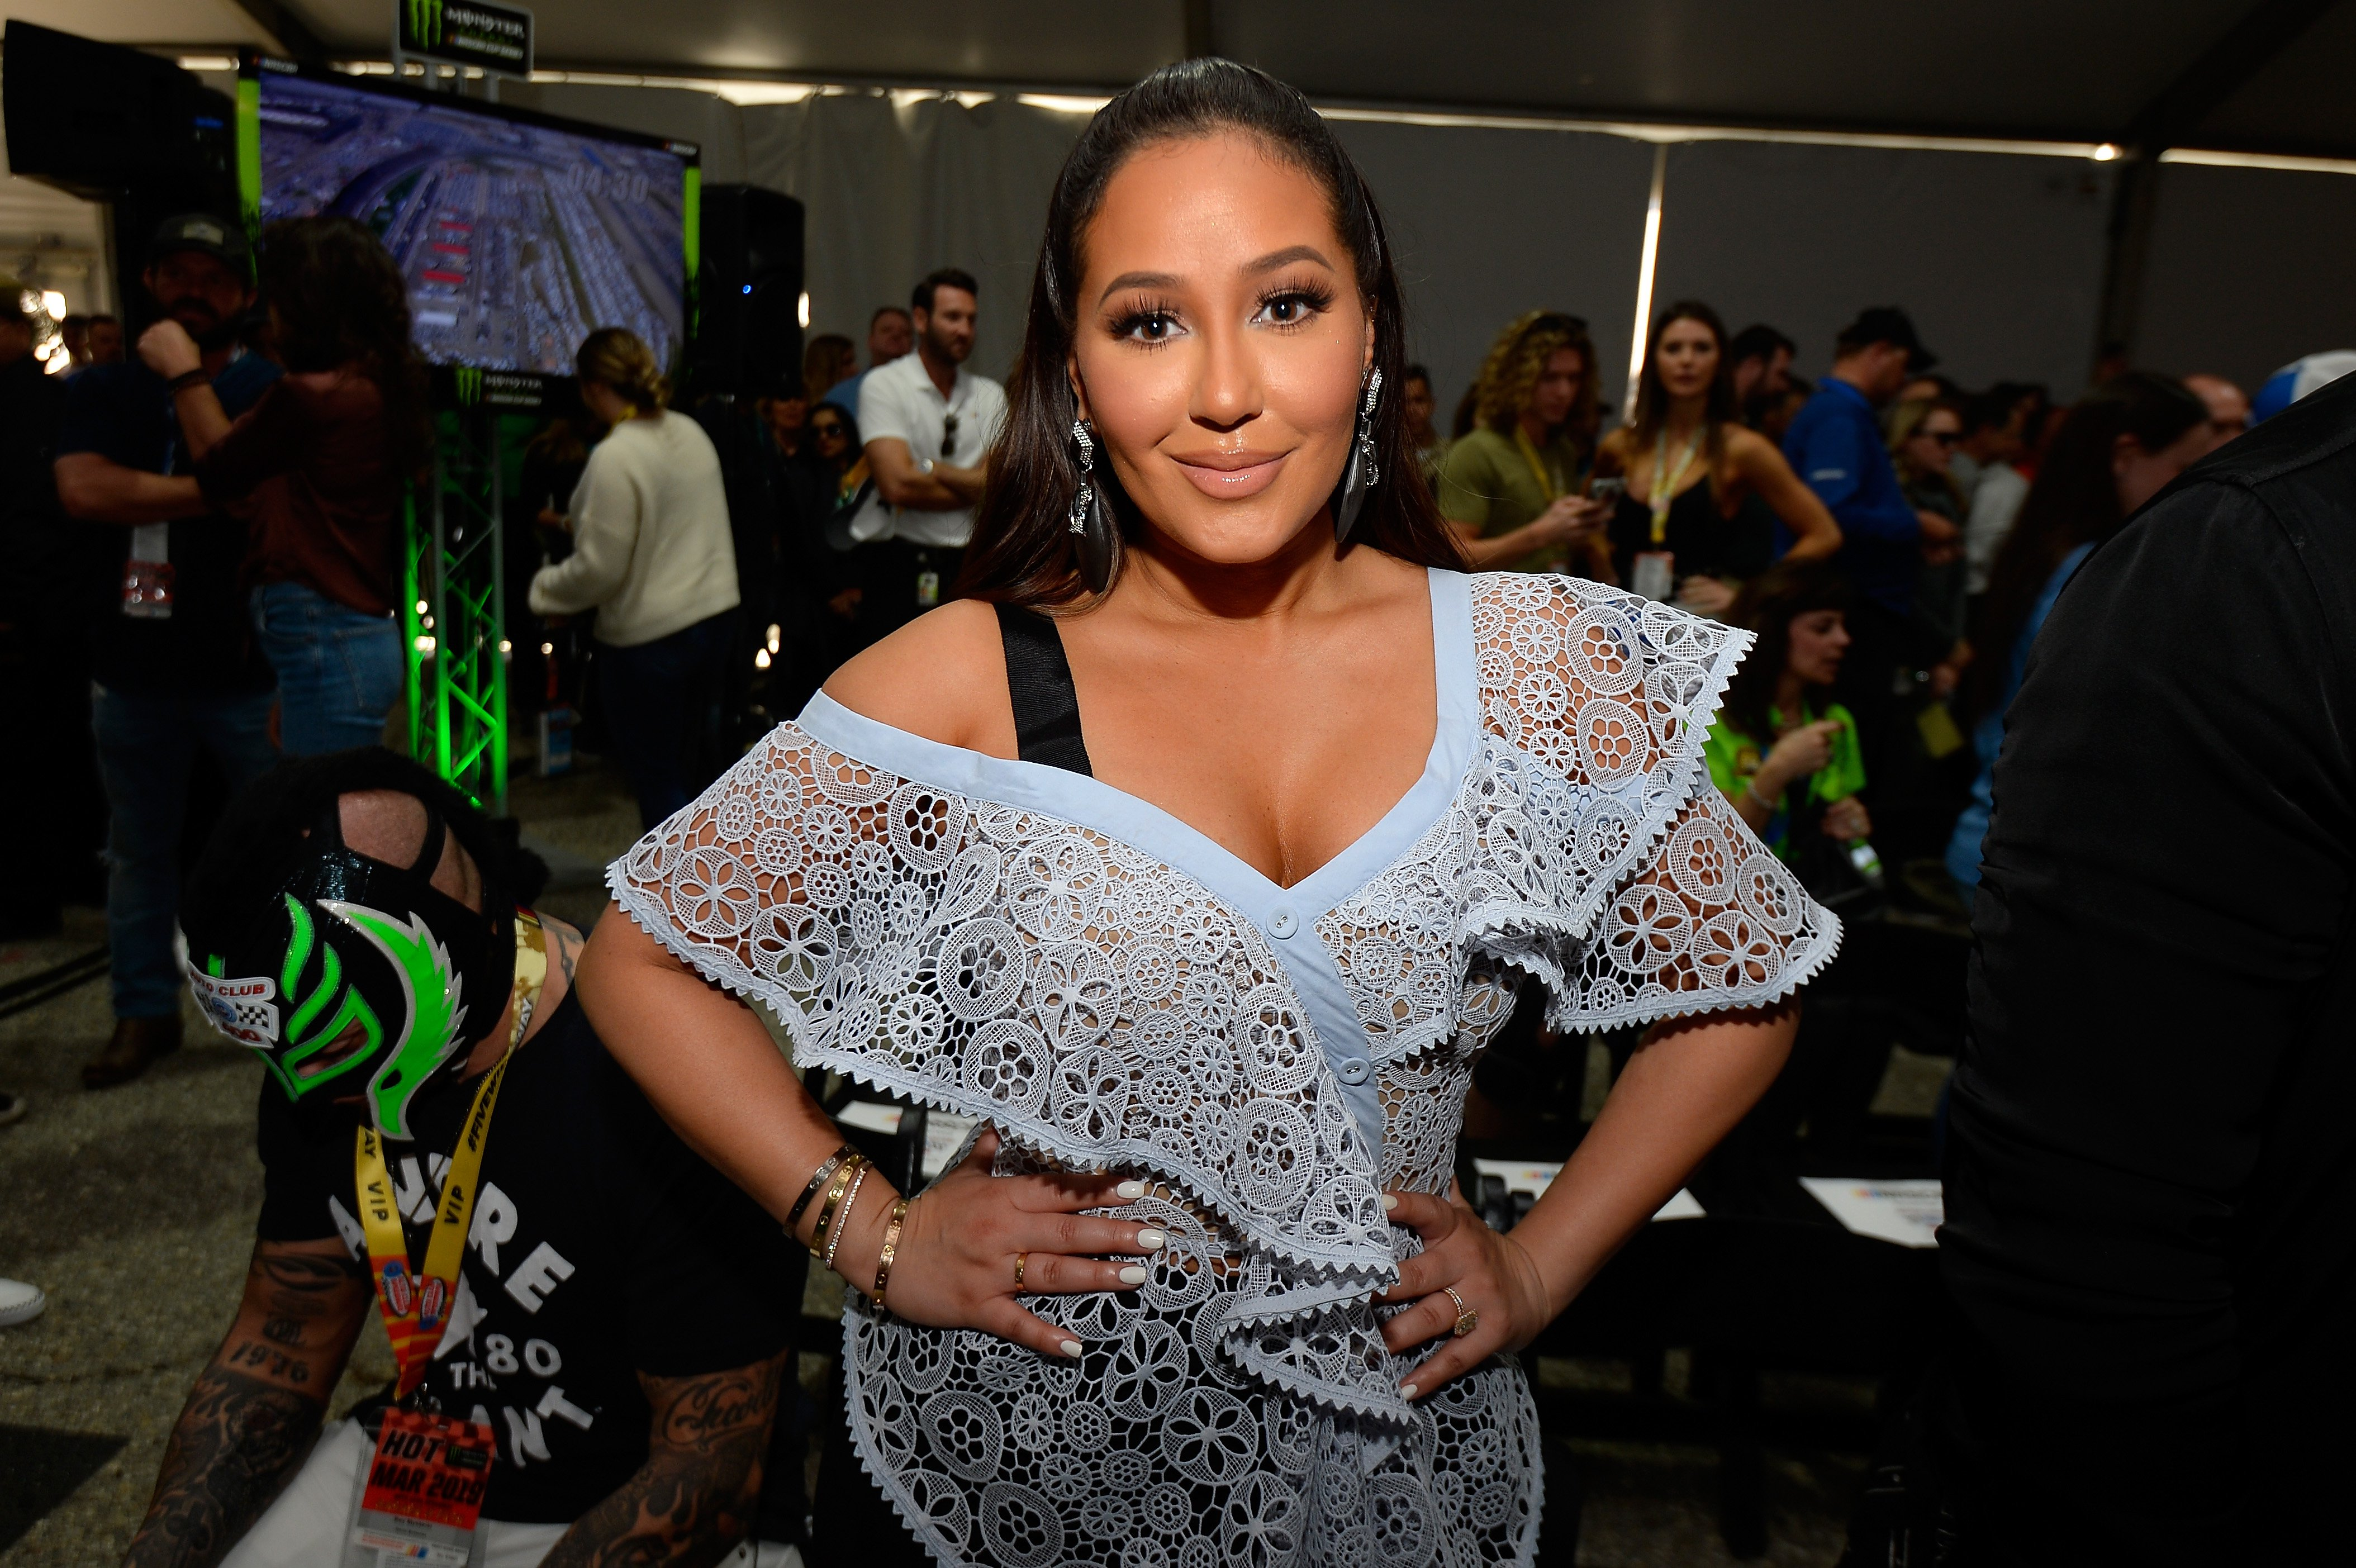 Adrienne Houghton began her vegan diet in the spring, around the time this photo was taken at a NASCAR event in March 2019. | Photo: Getty Image